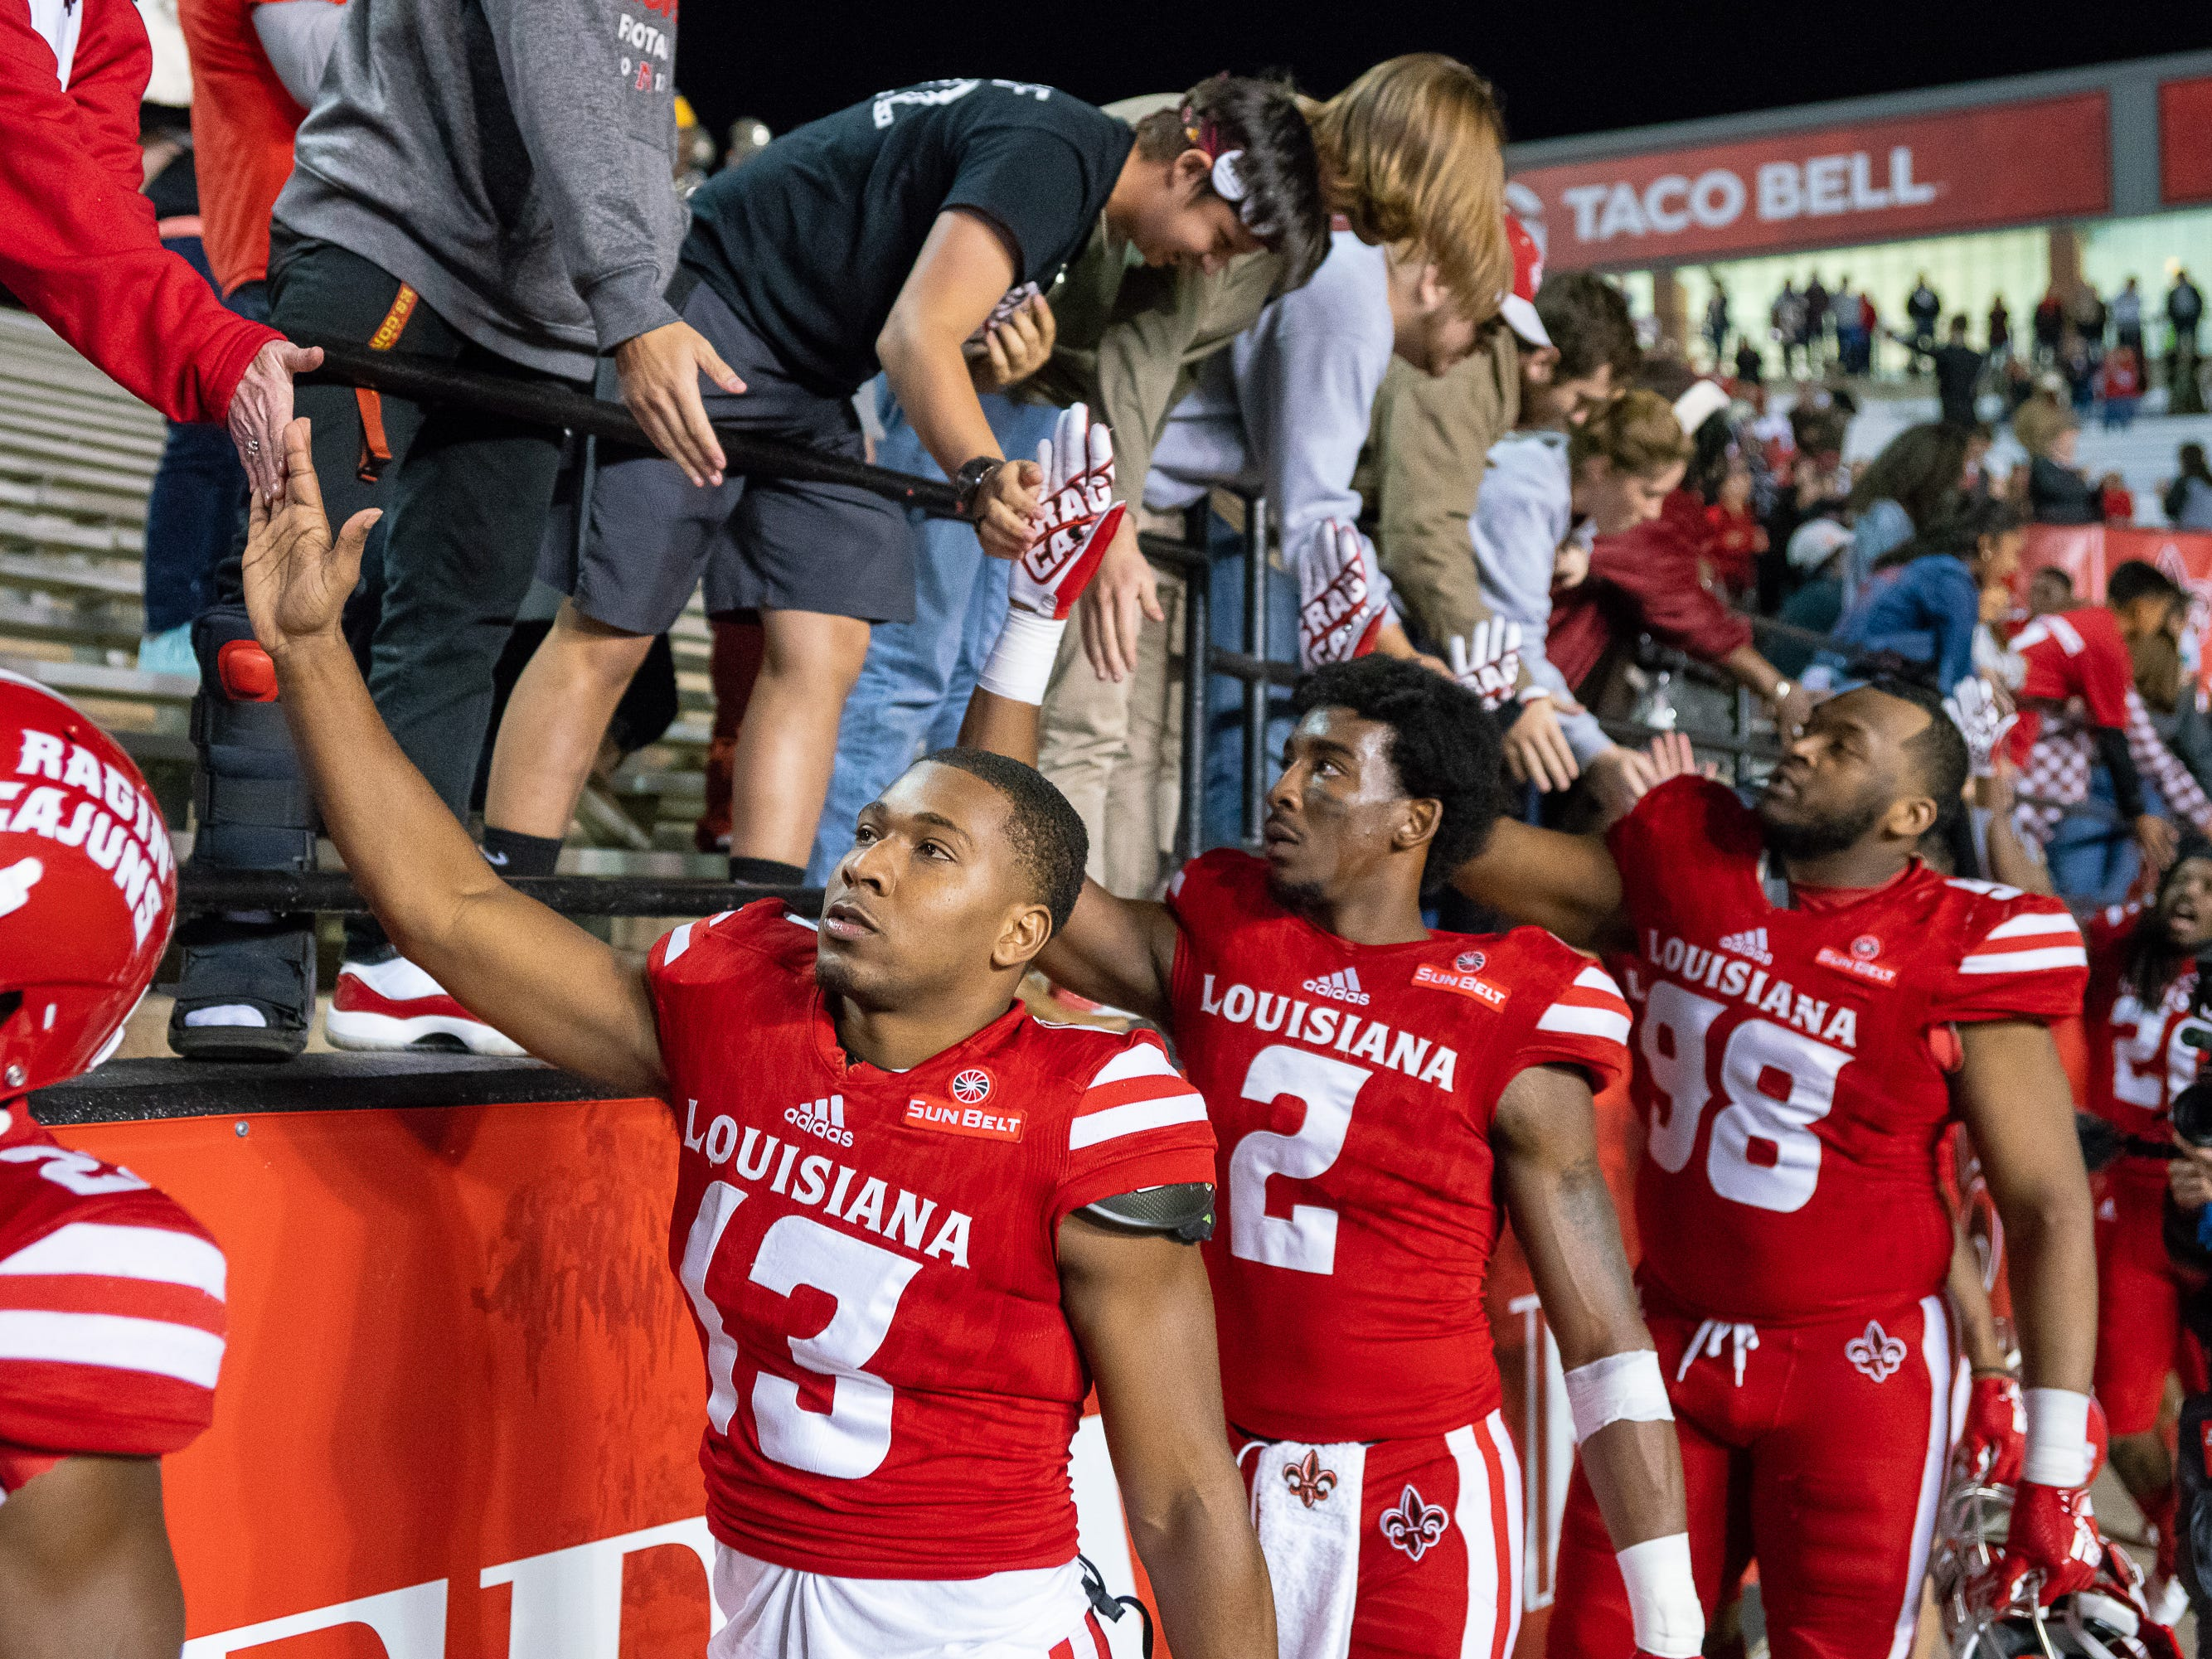 Players celebrate with UL fans after the game as the Ragin' Cajuns play against the South Alabama Jaguars at Cajun Field on November 17, 2018.